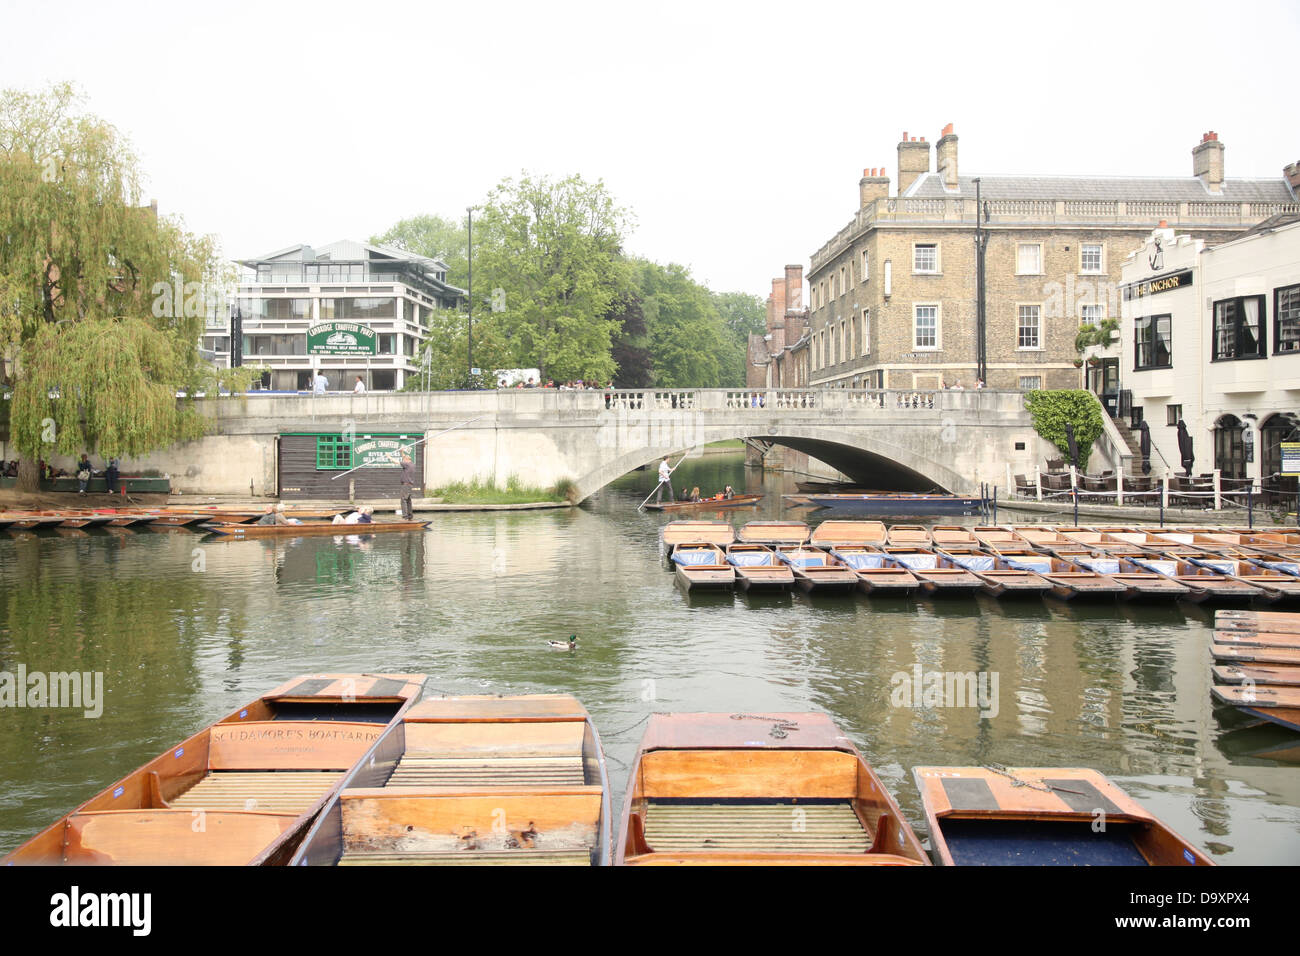 Scudamore's Punting Company, The Anchor Pub and the Silver Street Bridge in Cambridge. - Stock Image